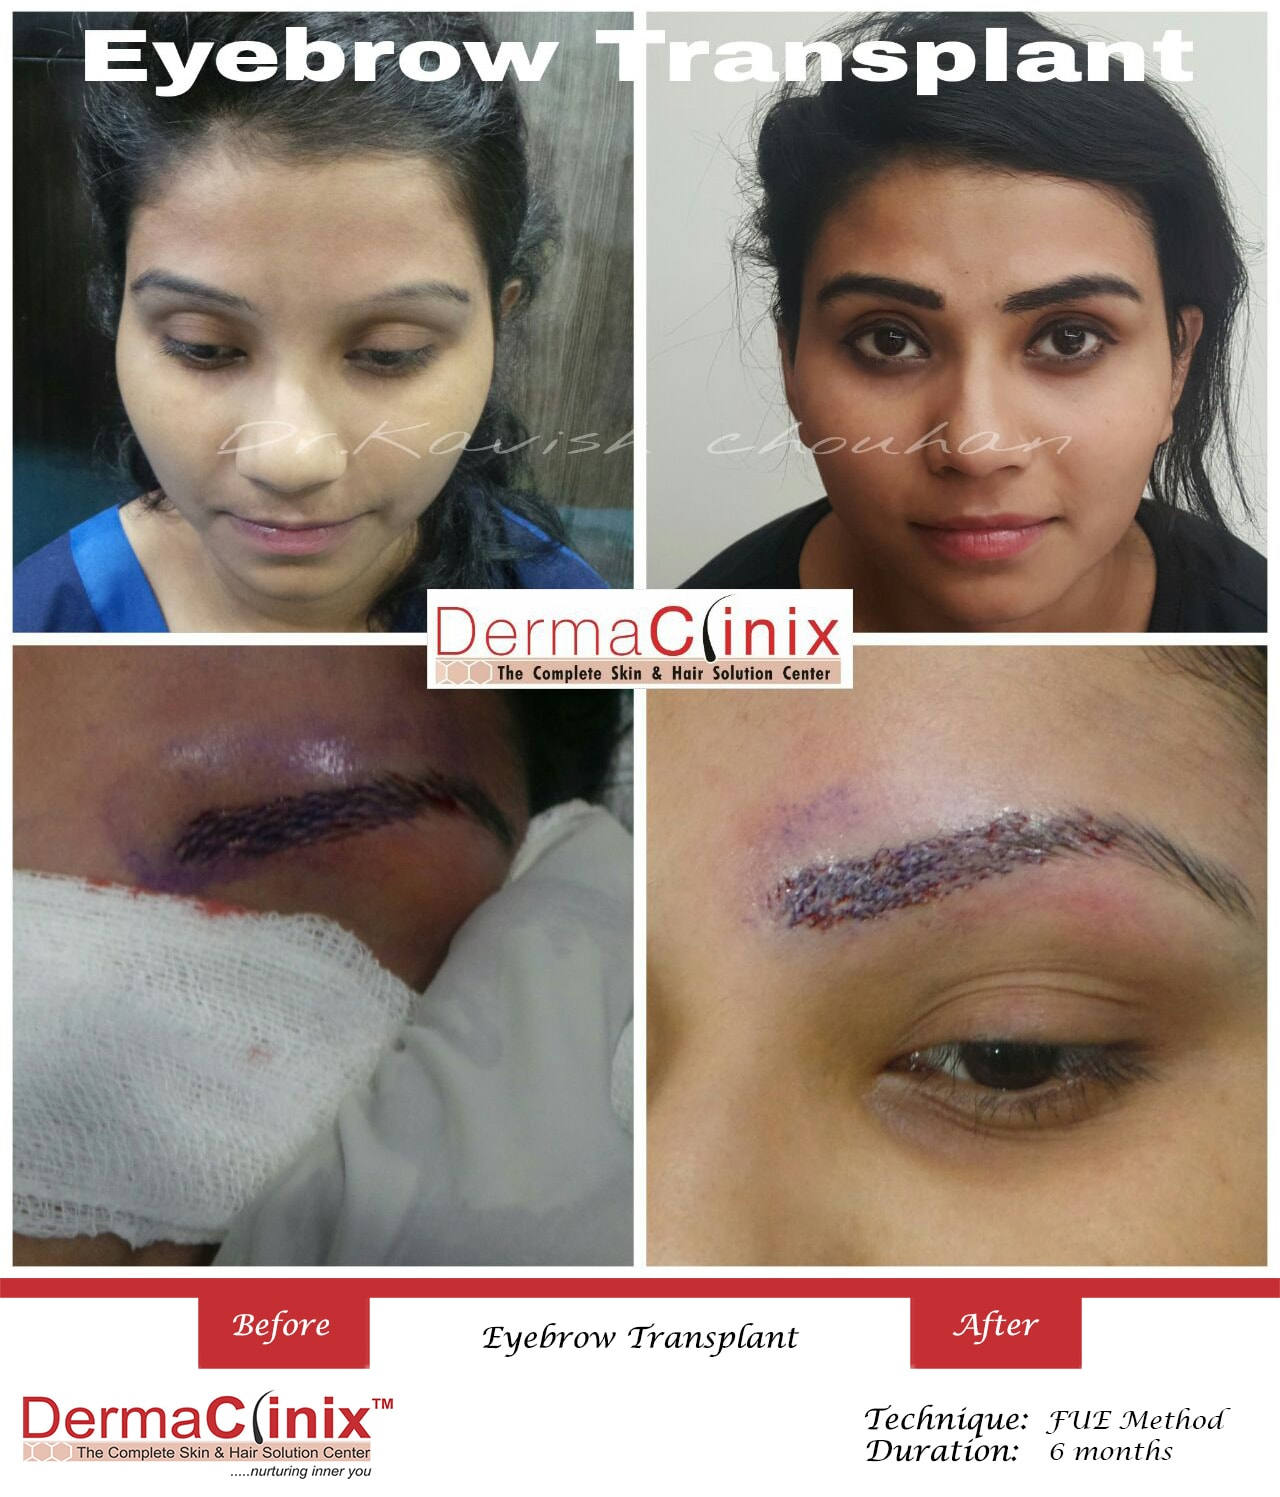 Eyebrow Eyelashes Transplant Before After Results in Delhi ...